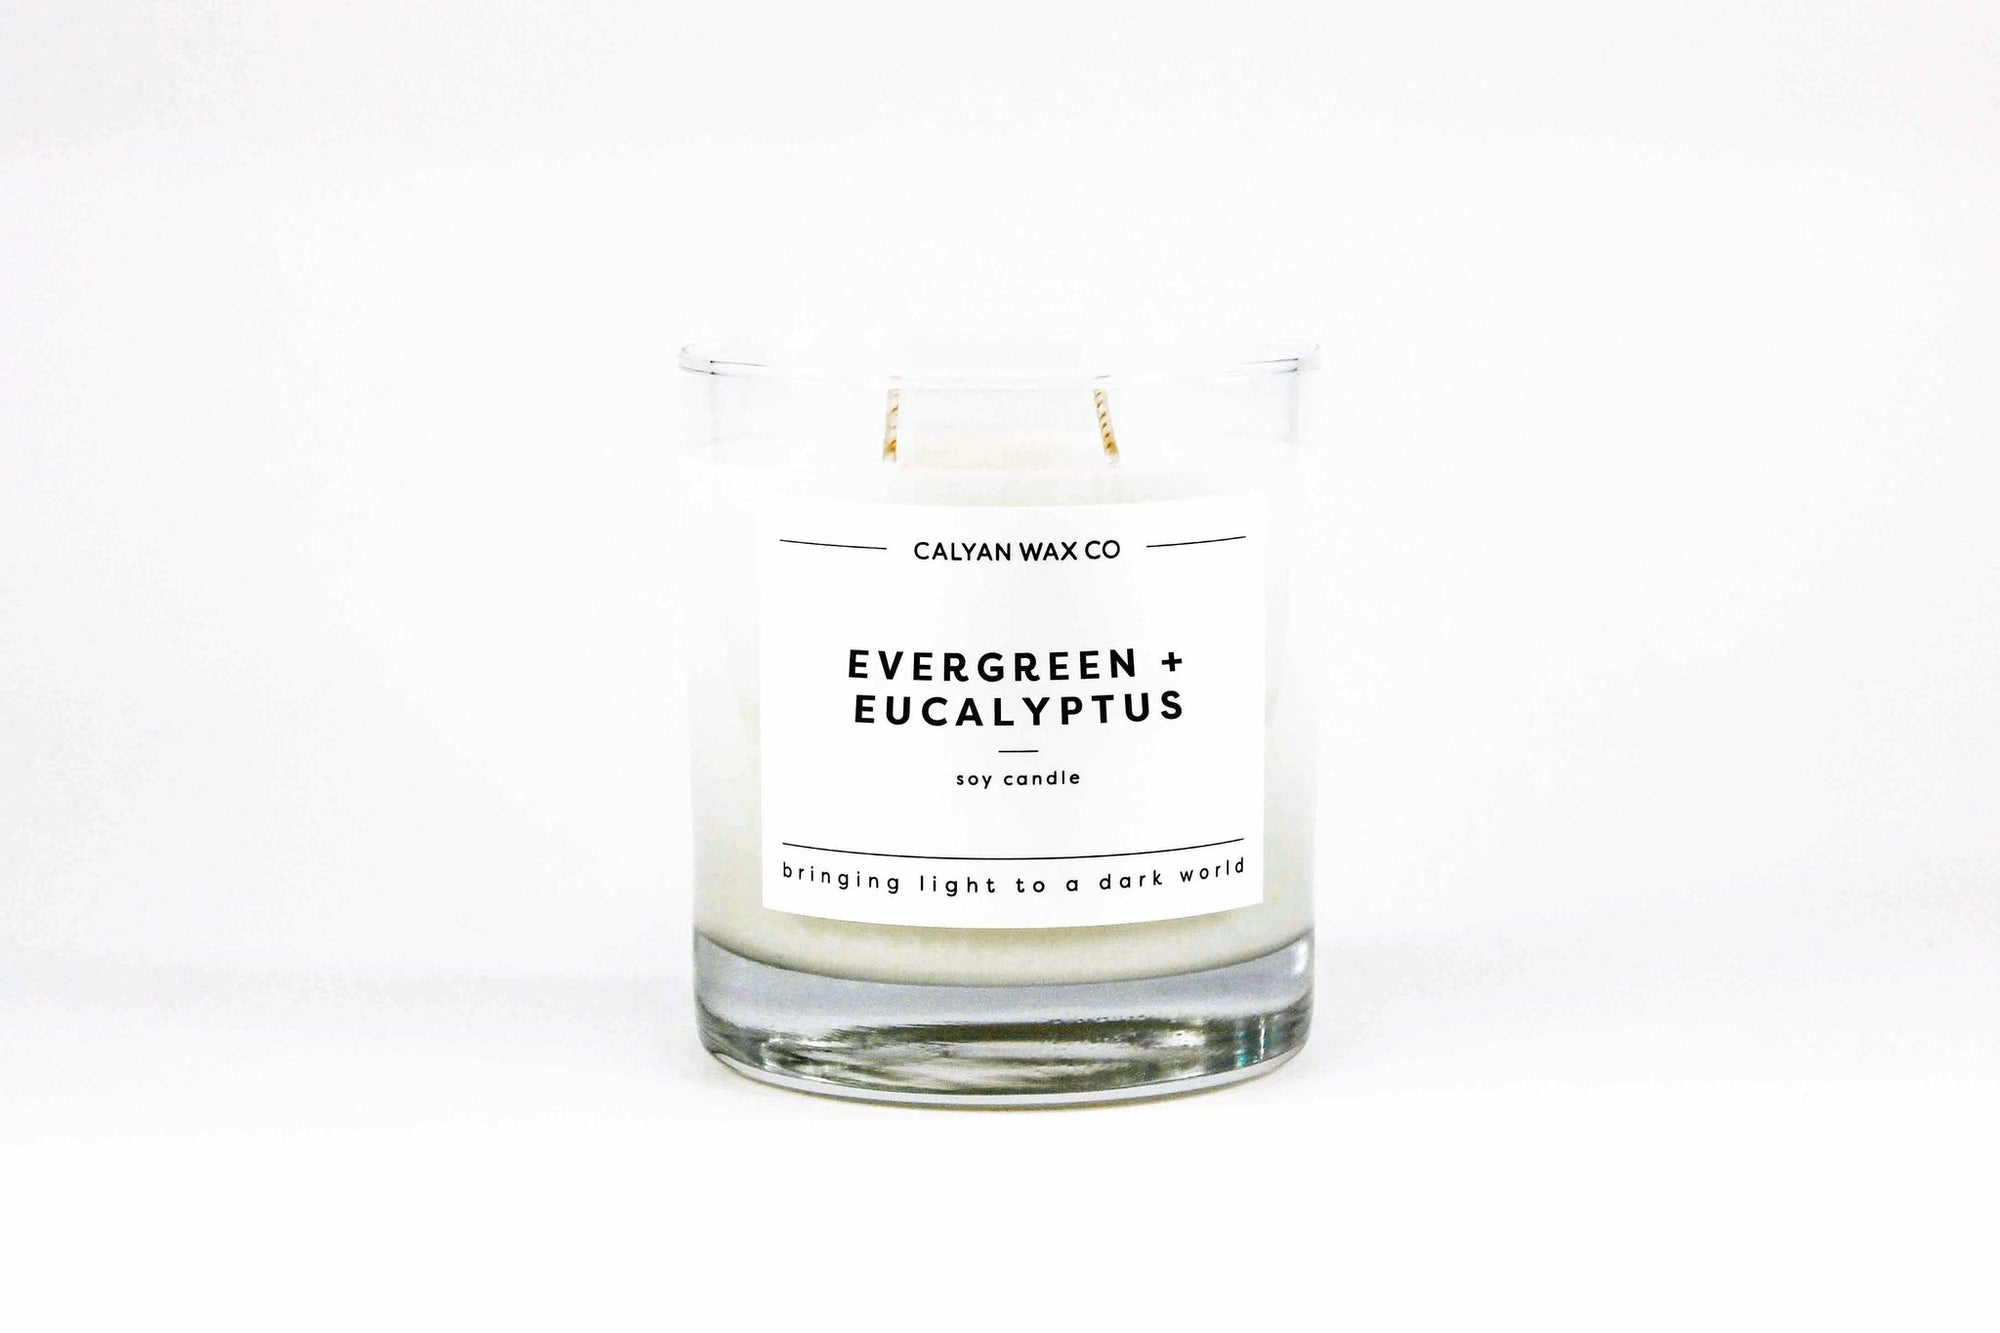 Evergreen + Eucalyptus Glass Tumbler